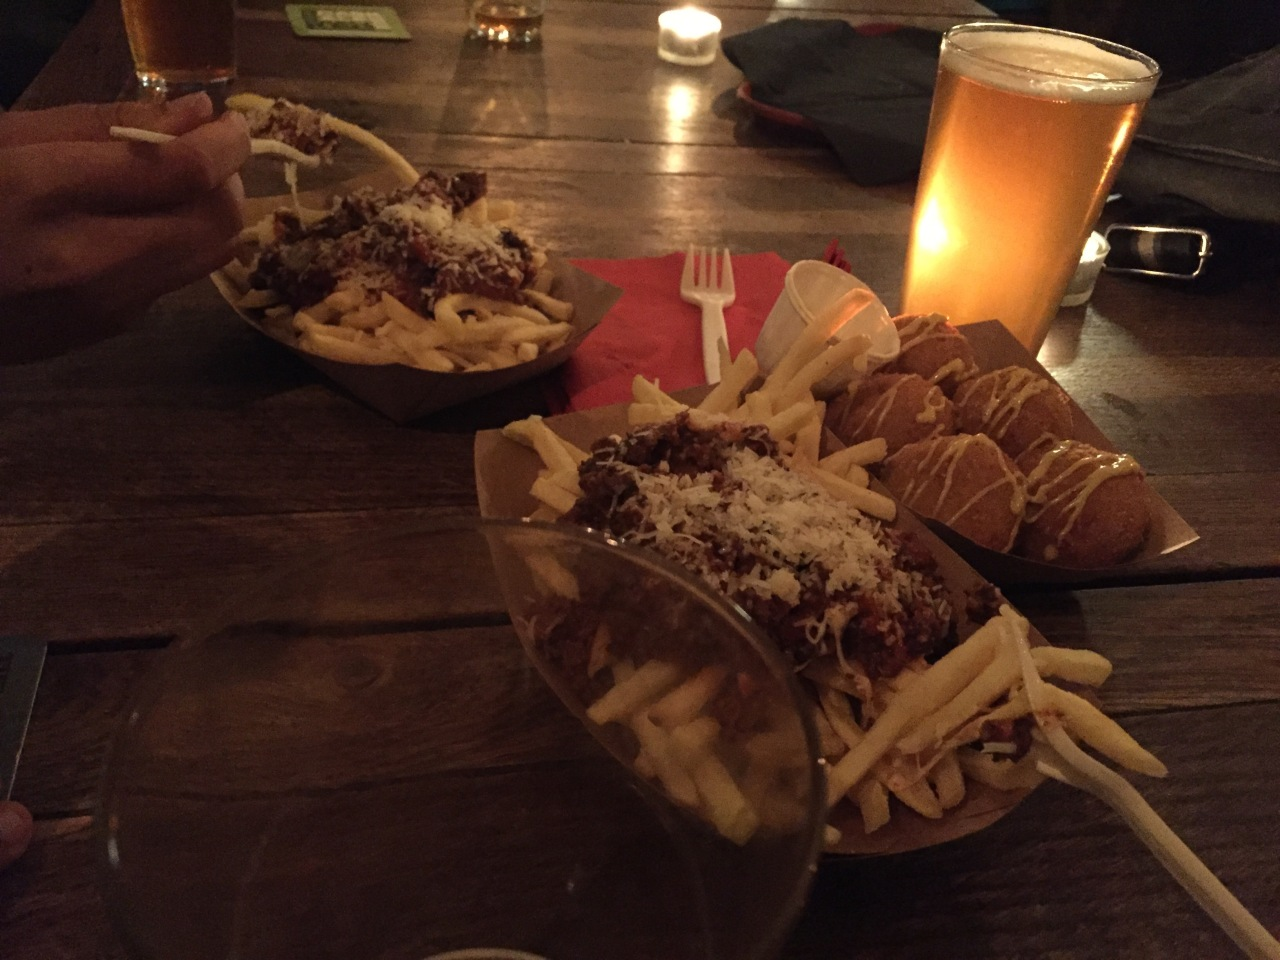 Fries and Meatballs from Meat Heads